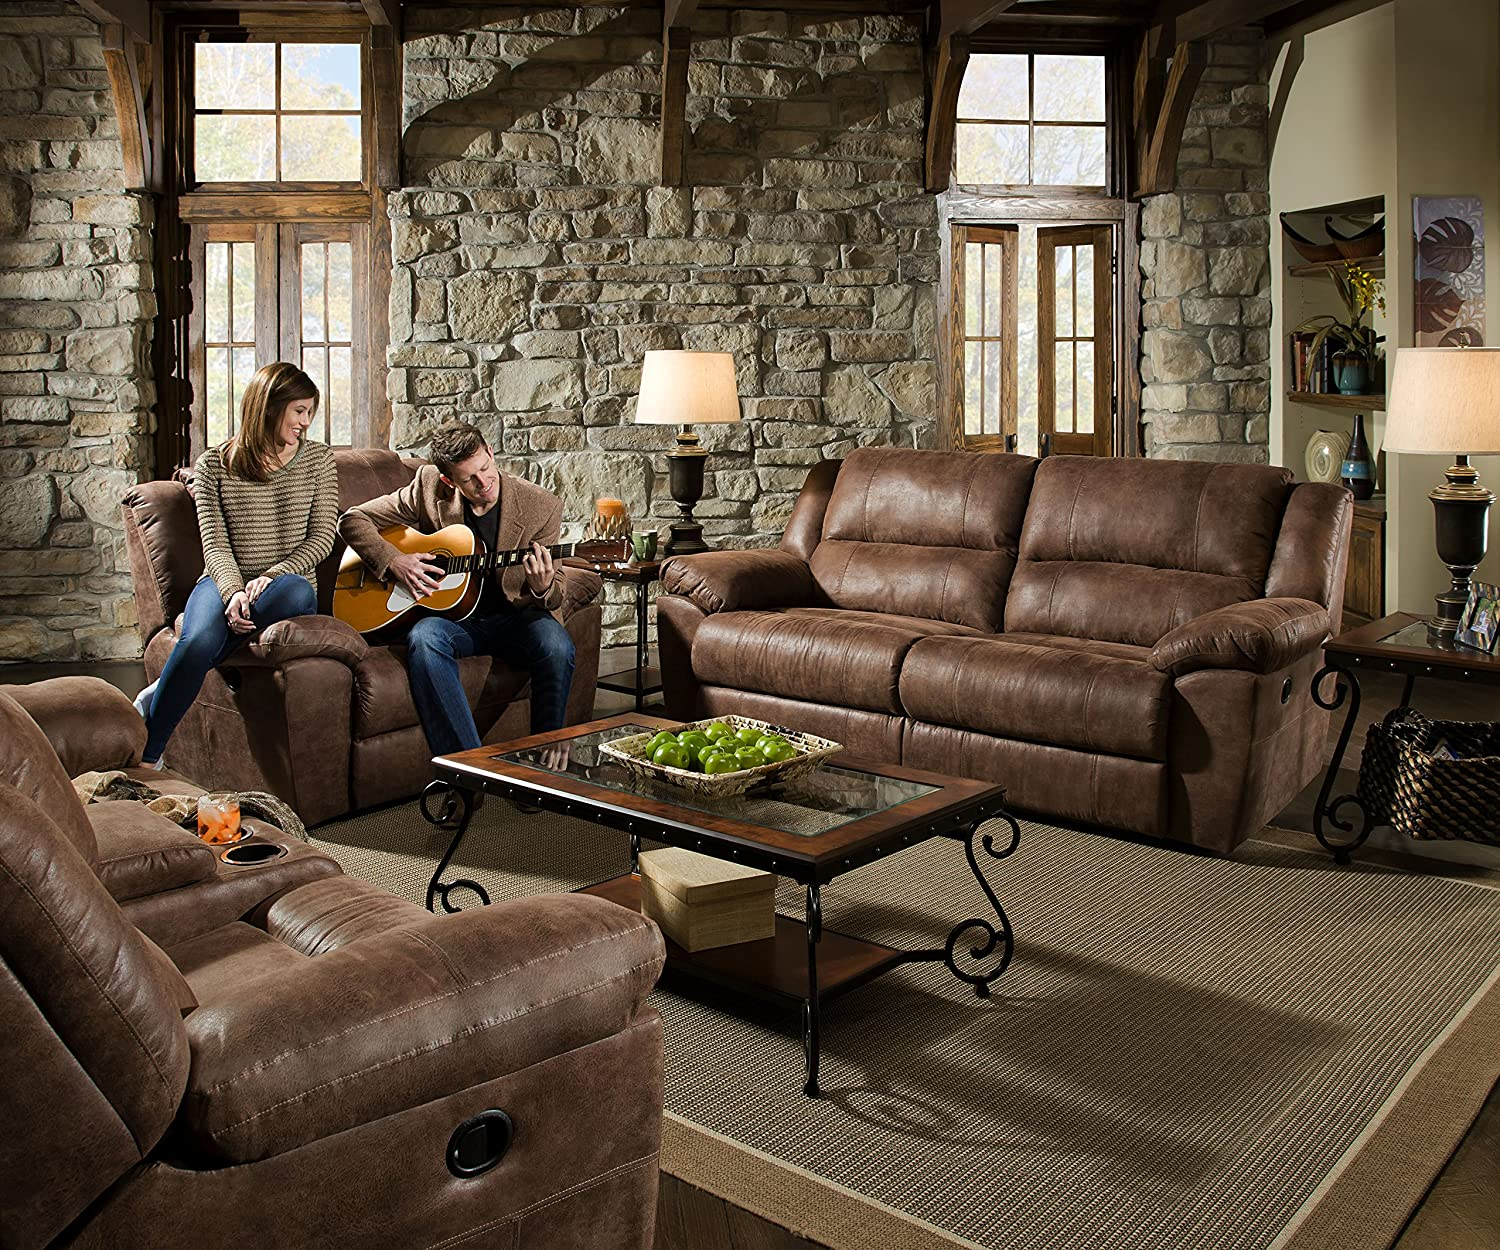 Simmons Living Room Set. Amazon com  Simmons Upholstery Phoenix 2 pc Living Room Set with Double Motion Sofa and Cuddler Recliner Mocha Kitchen Dining